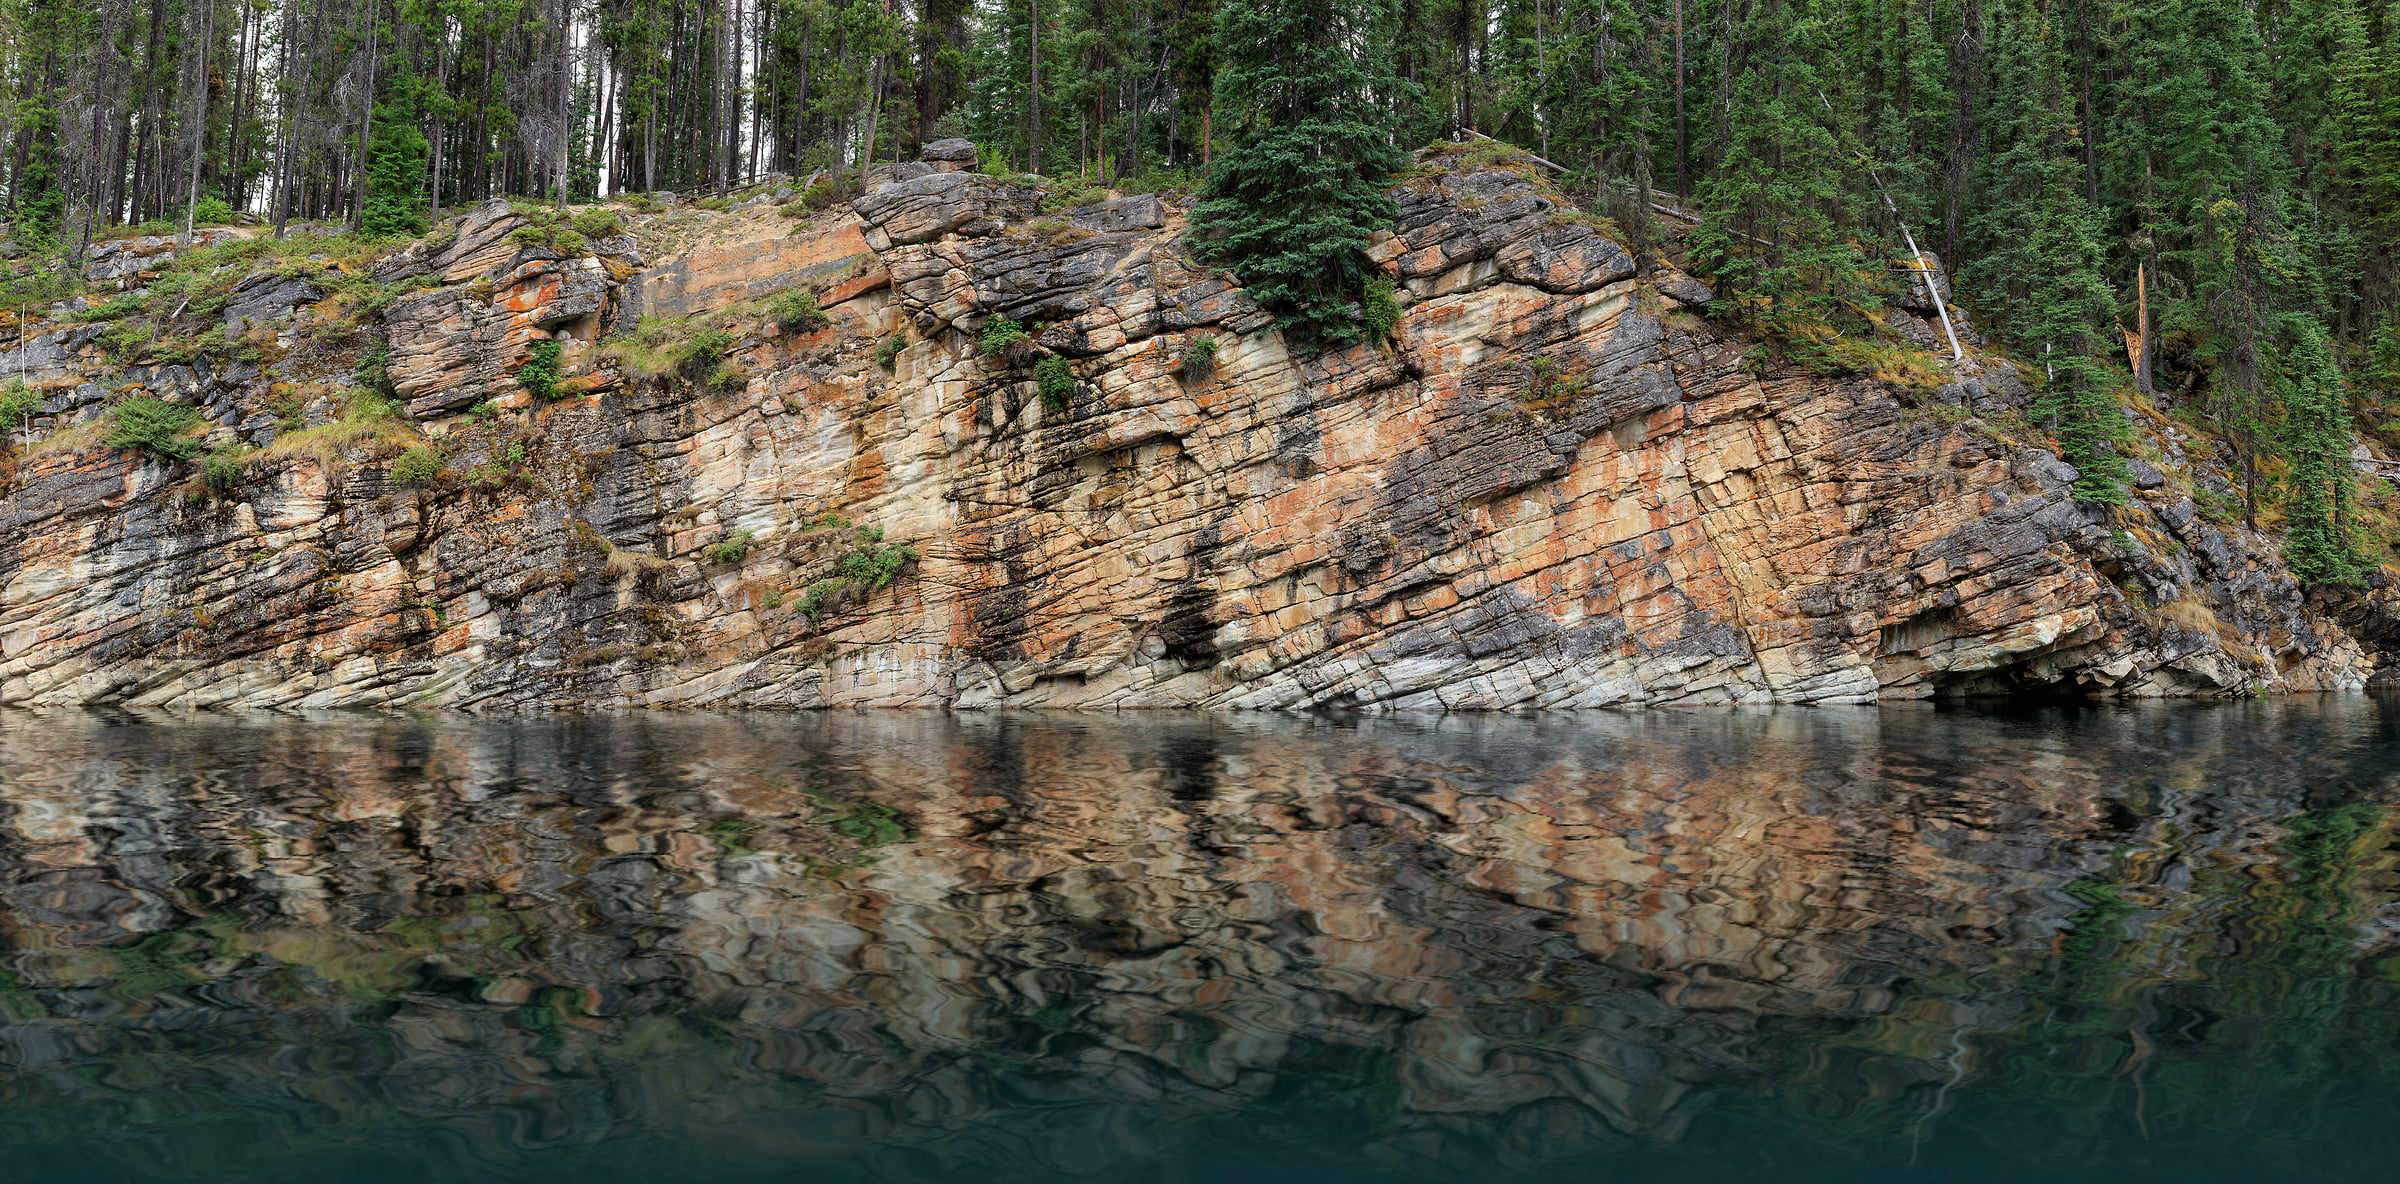 3,135 megapixels! A very high resolution, large-format photo of a rock wall, a calm lake, and an evergreen forest; nature photograph created by Scott Dimond at Horseshoe Lake in Jasper National Park, Alberta, Canada